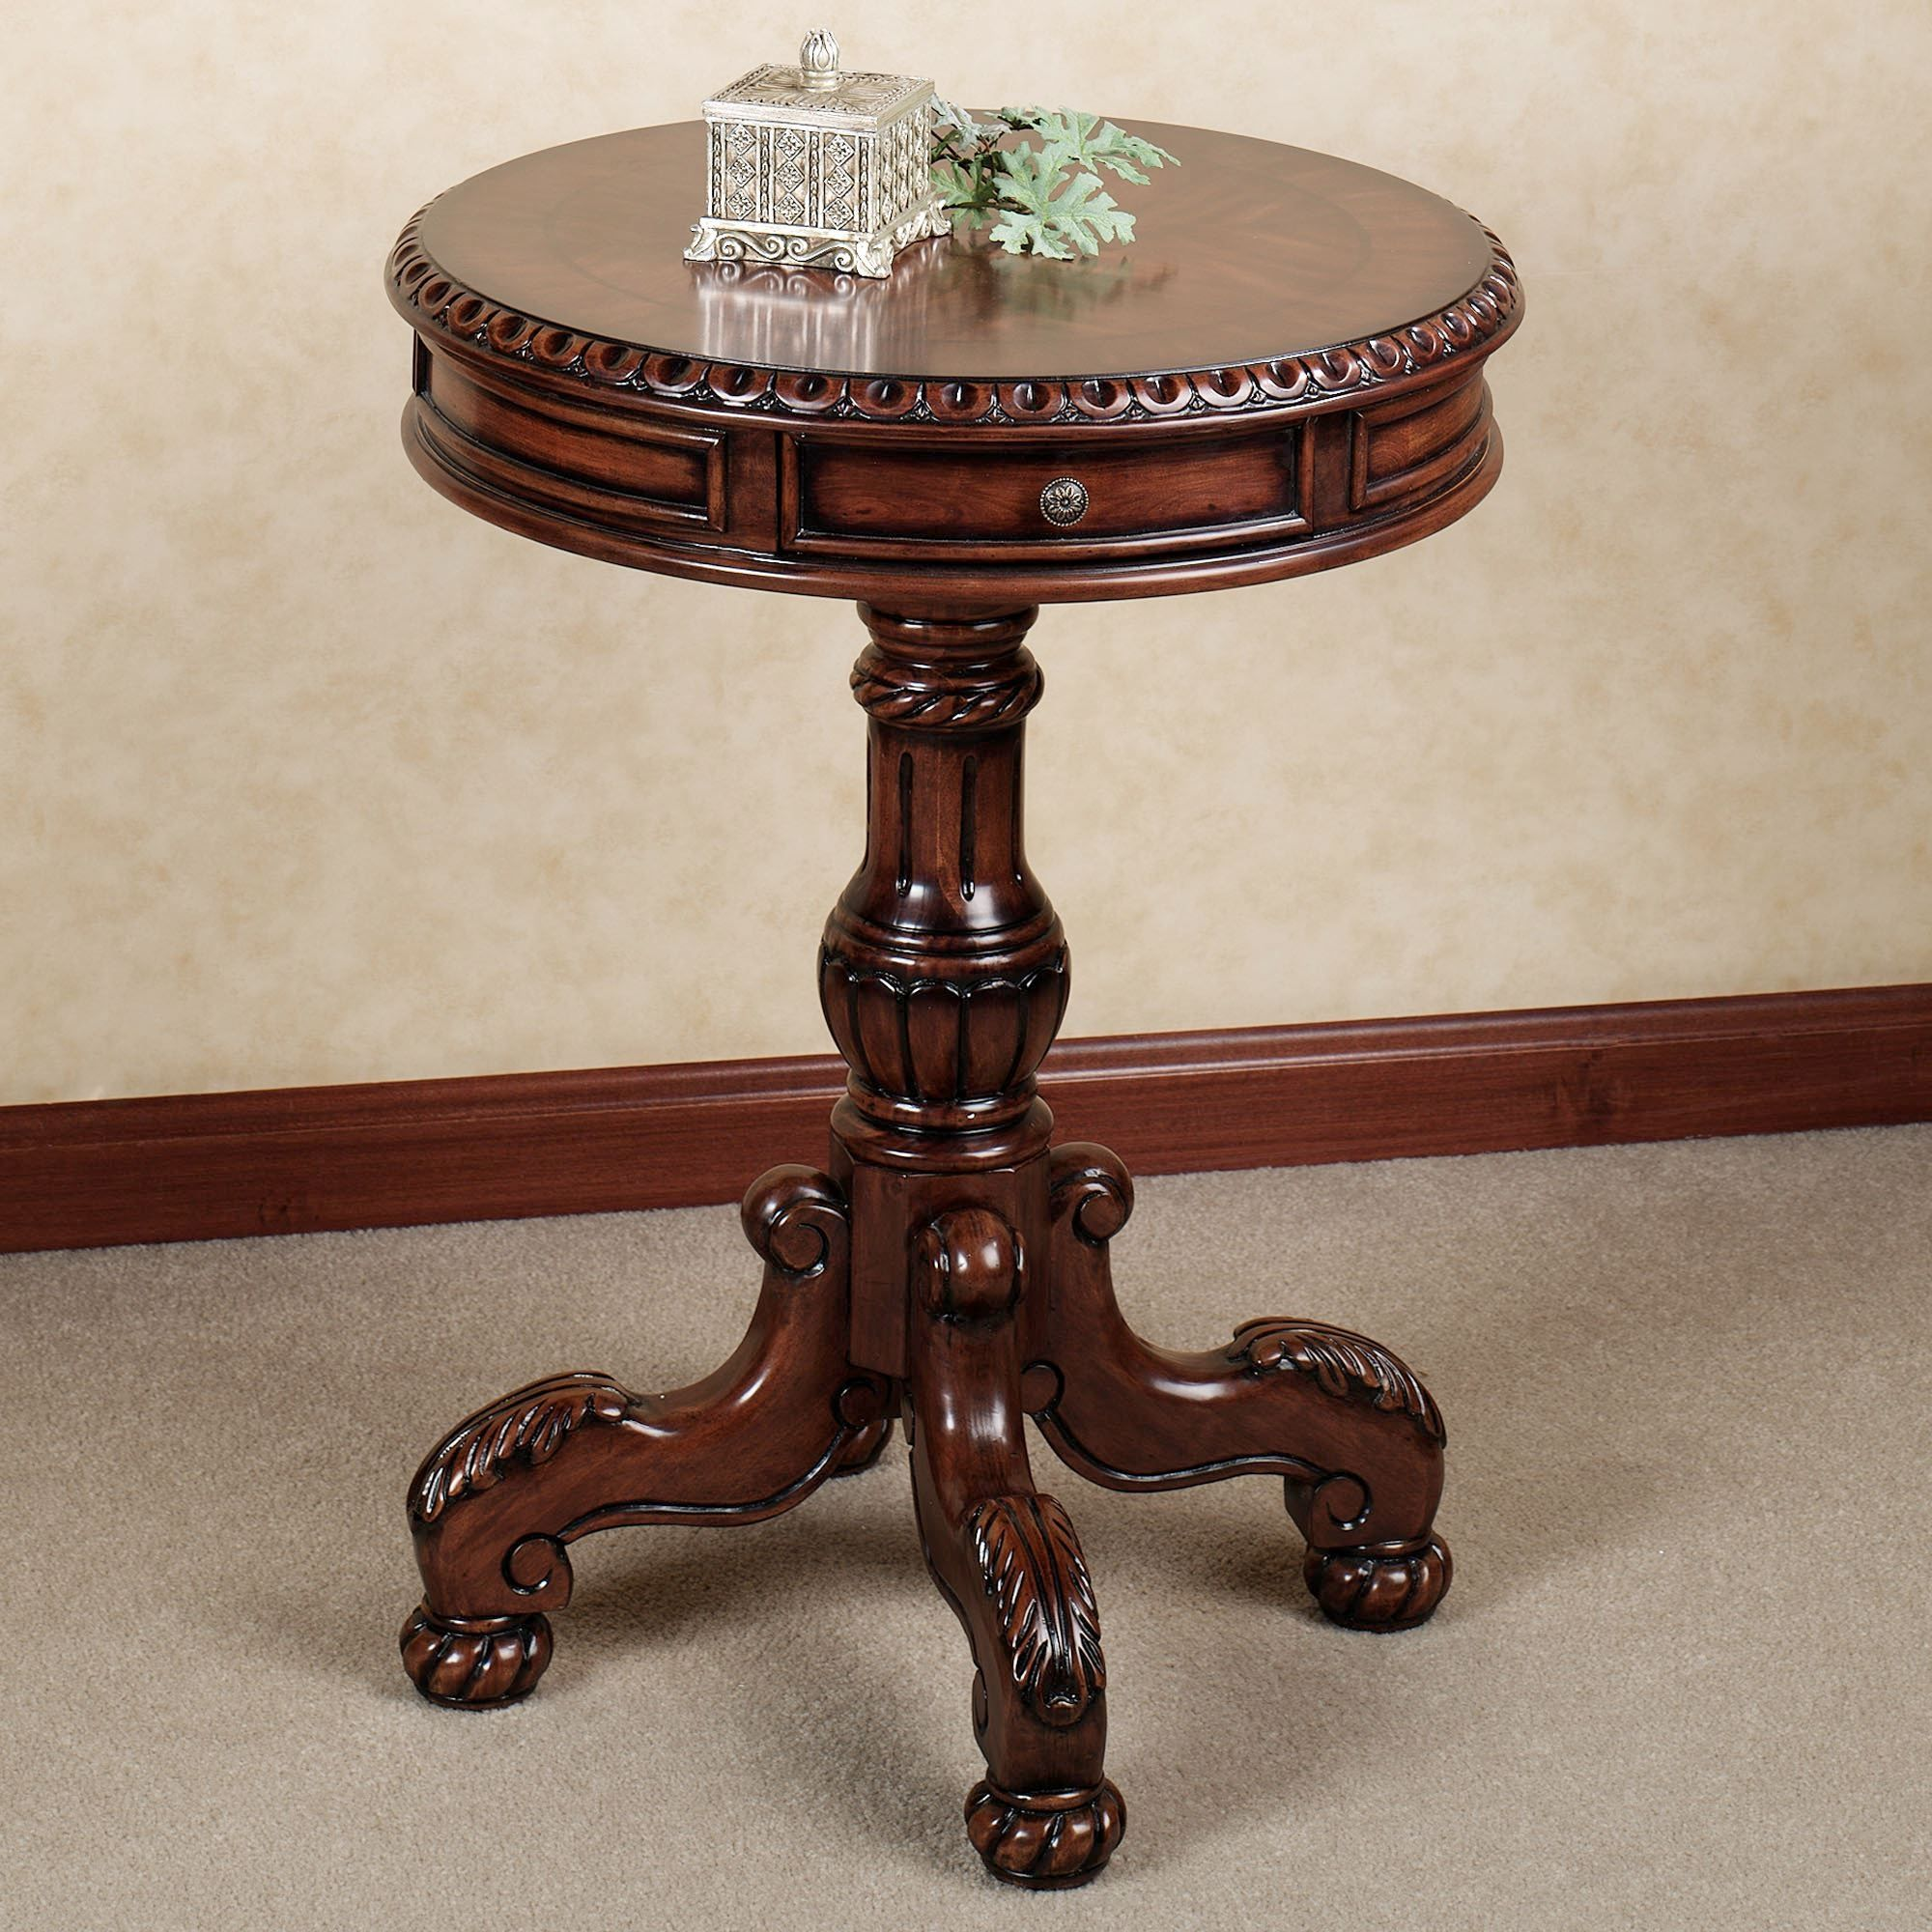 tall round pedestal accent table argharts room and board rugs desk lamps marble coffee target wide door threshold pin legs wood floor trim beachy end tables black half moon thin